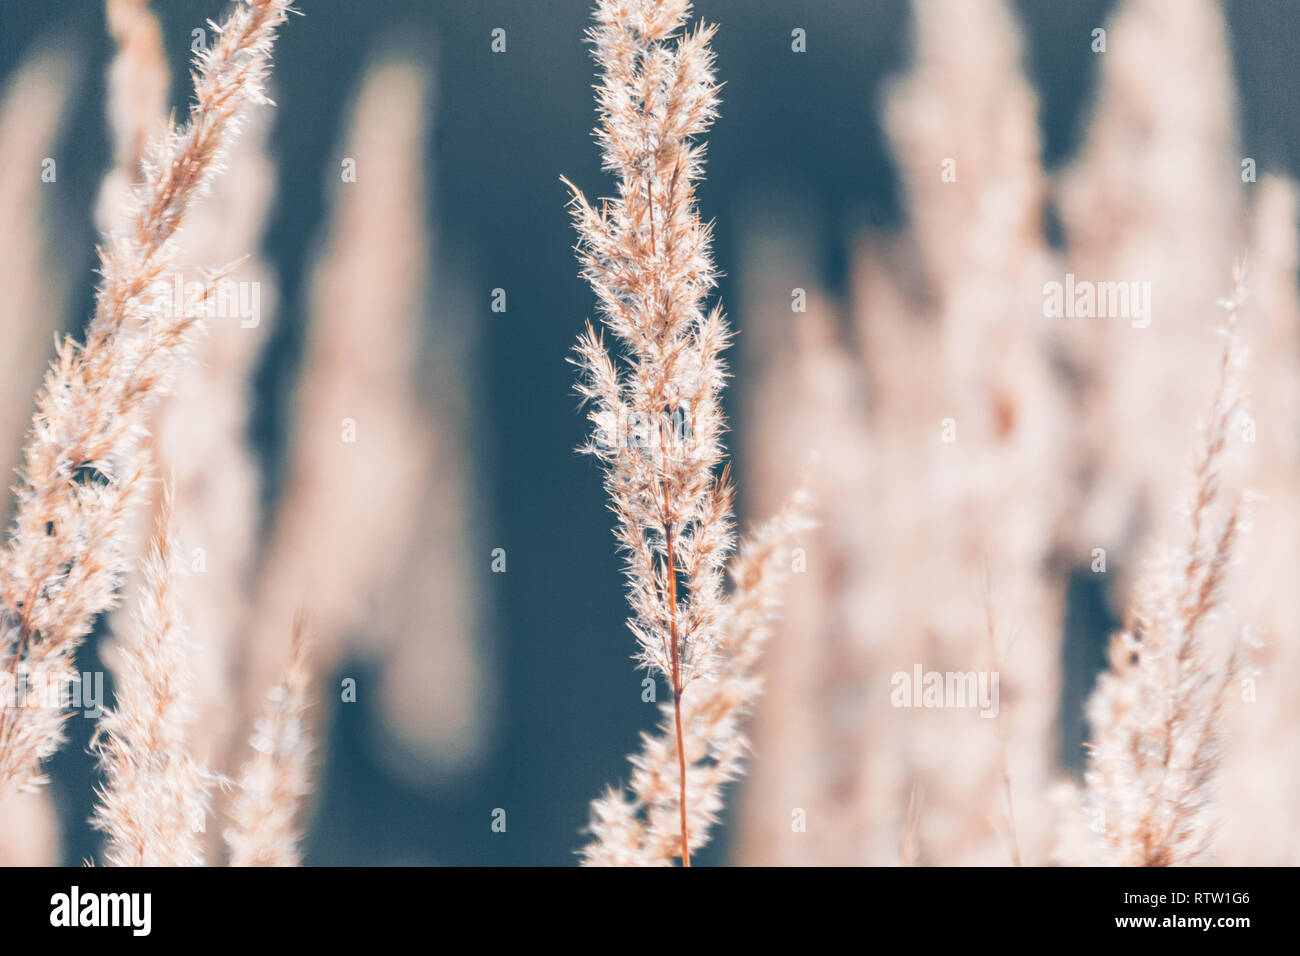 Abstraction of dry grass brown tones texture - Stock Image